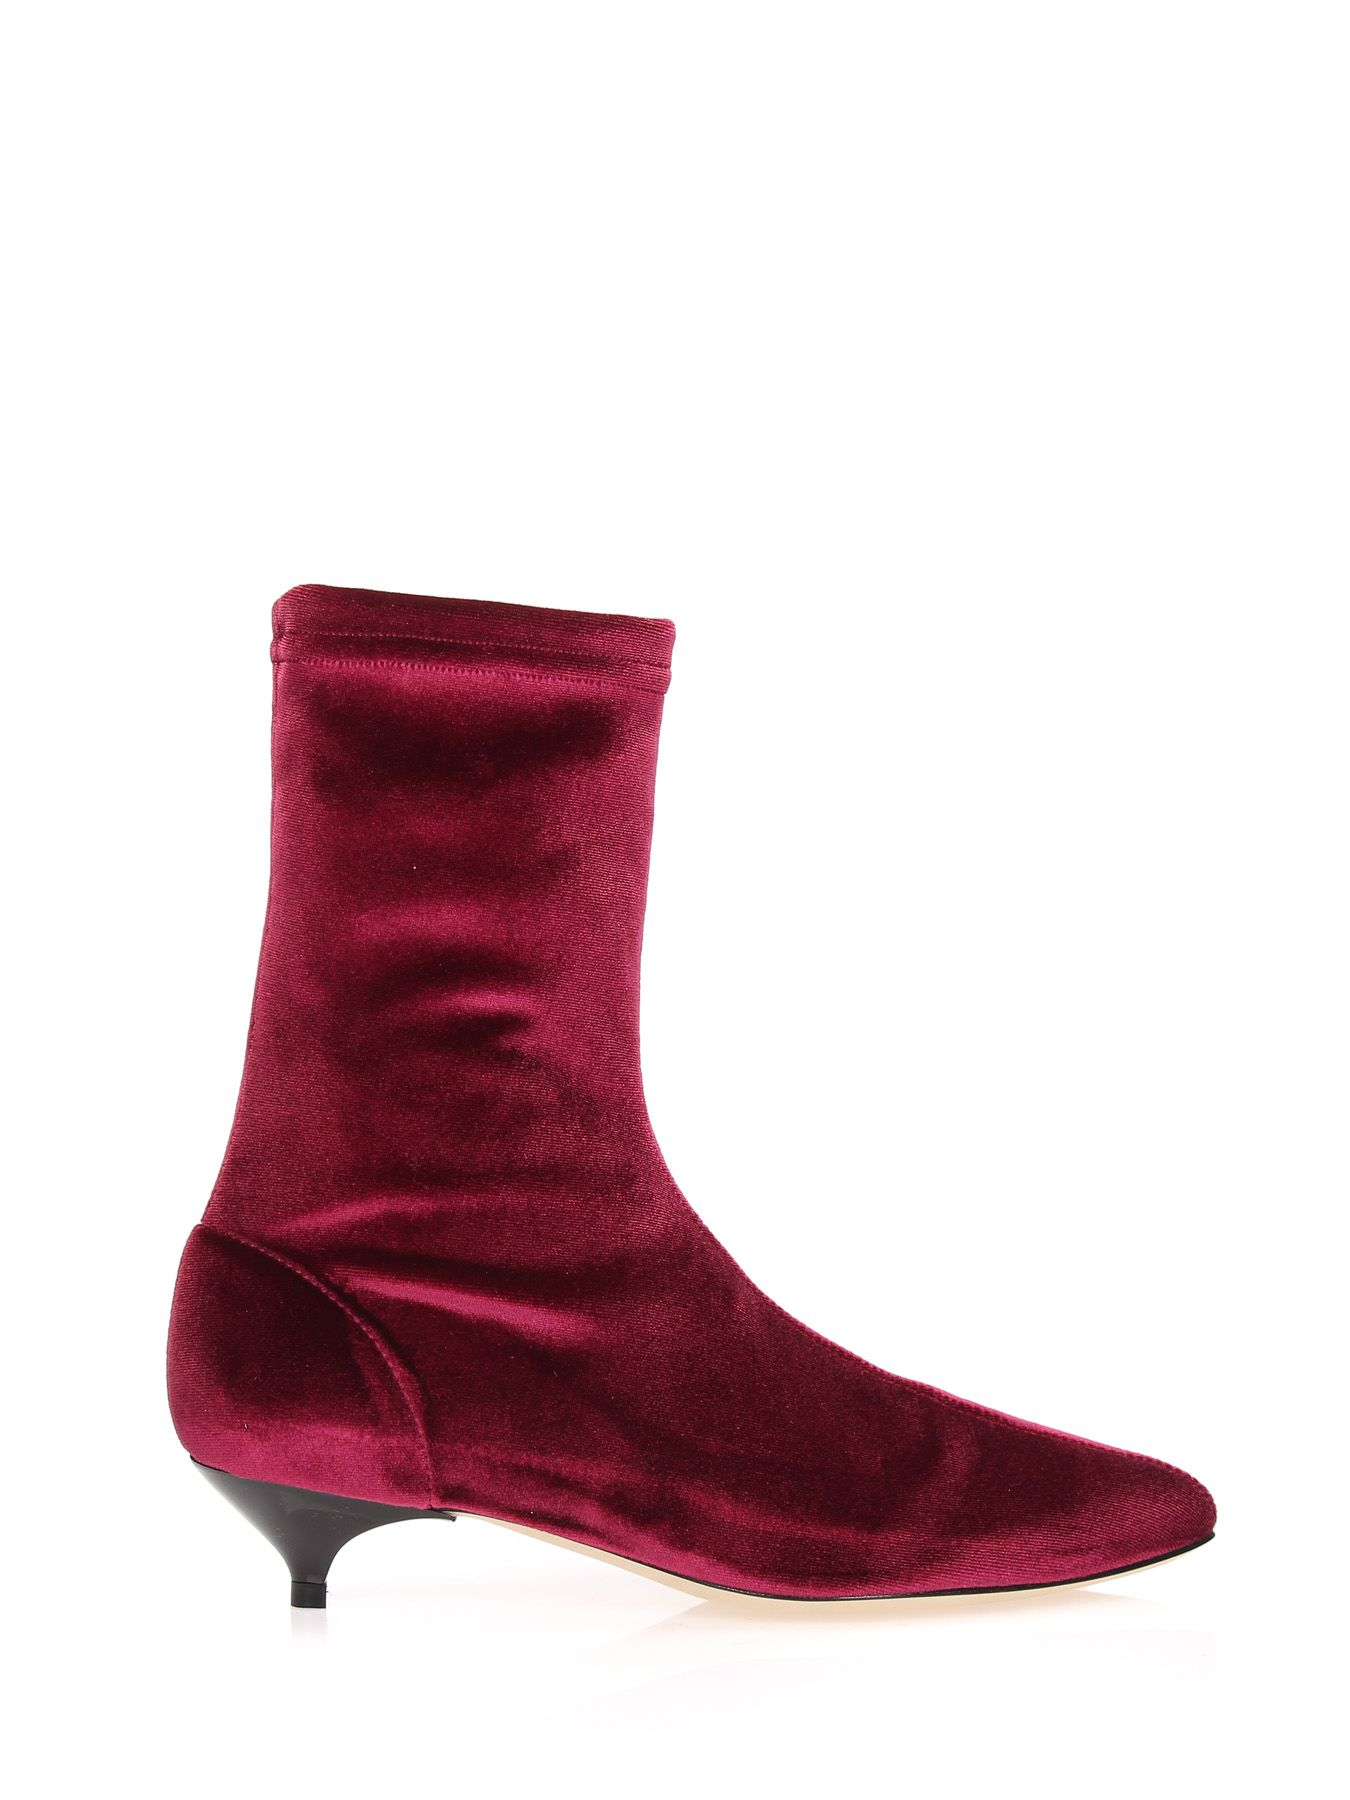 GIA COUTURE Ankle Boots Gia 04A1 in Red